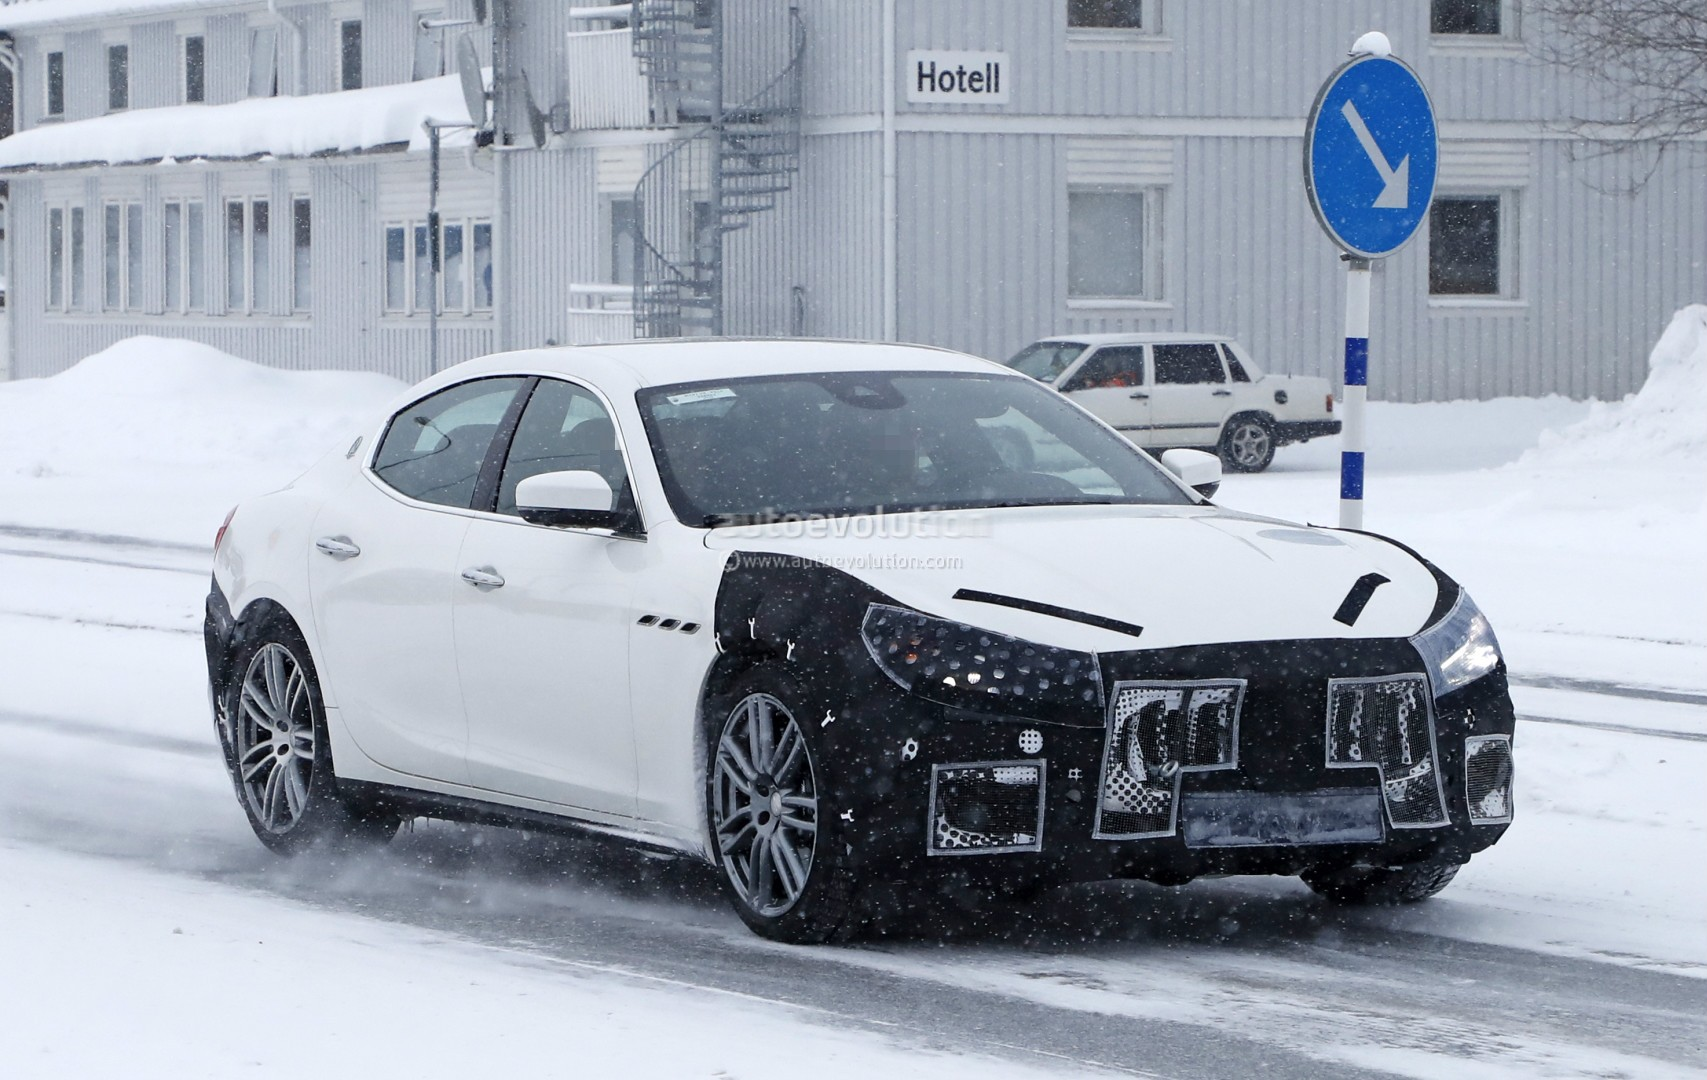 2018 maserati ghibli spied in sweden angry look prototype hides meaner grille autoevolution. Black Bedroom Furniture Sets. Home Design Ideas